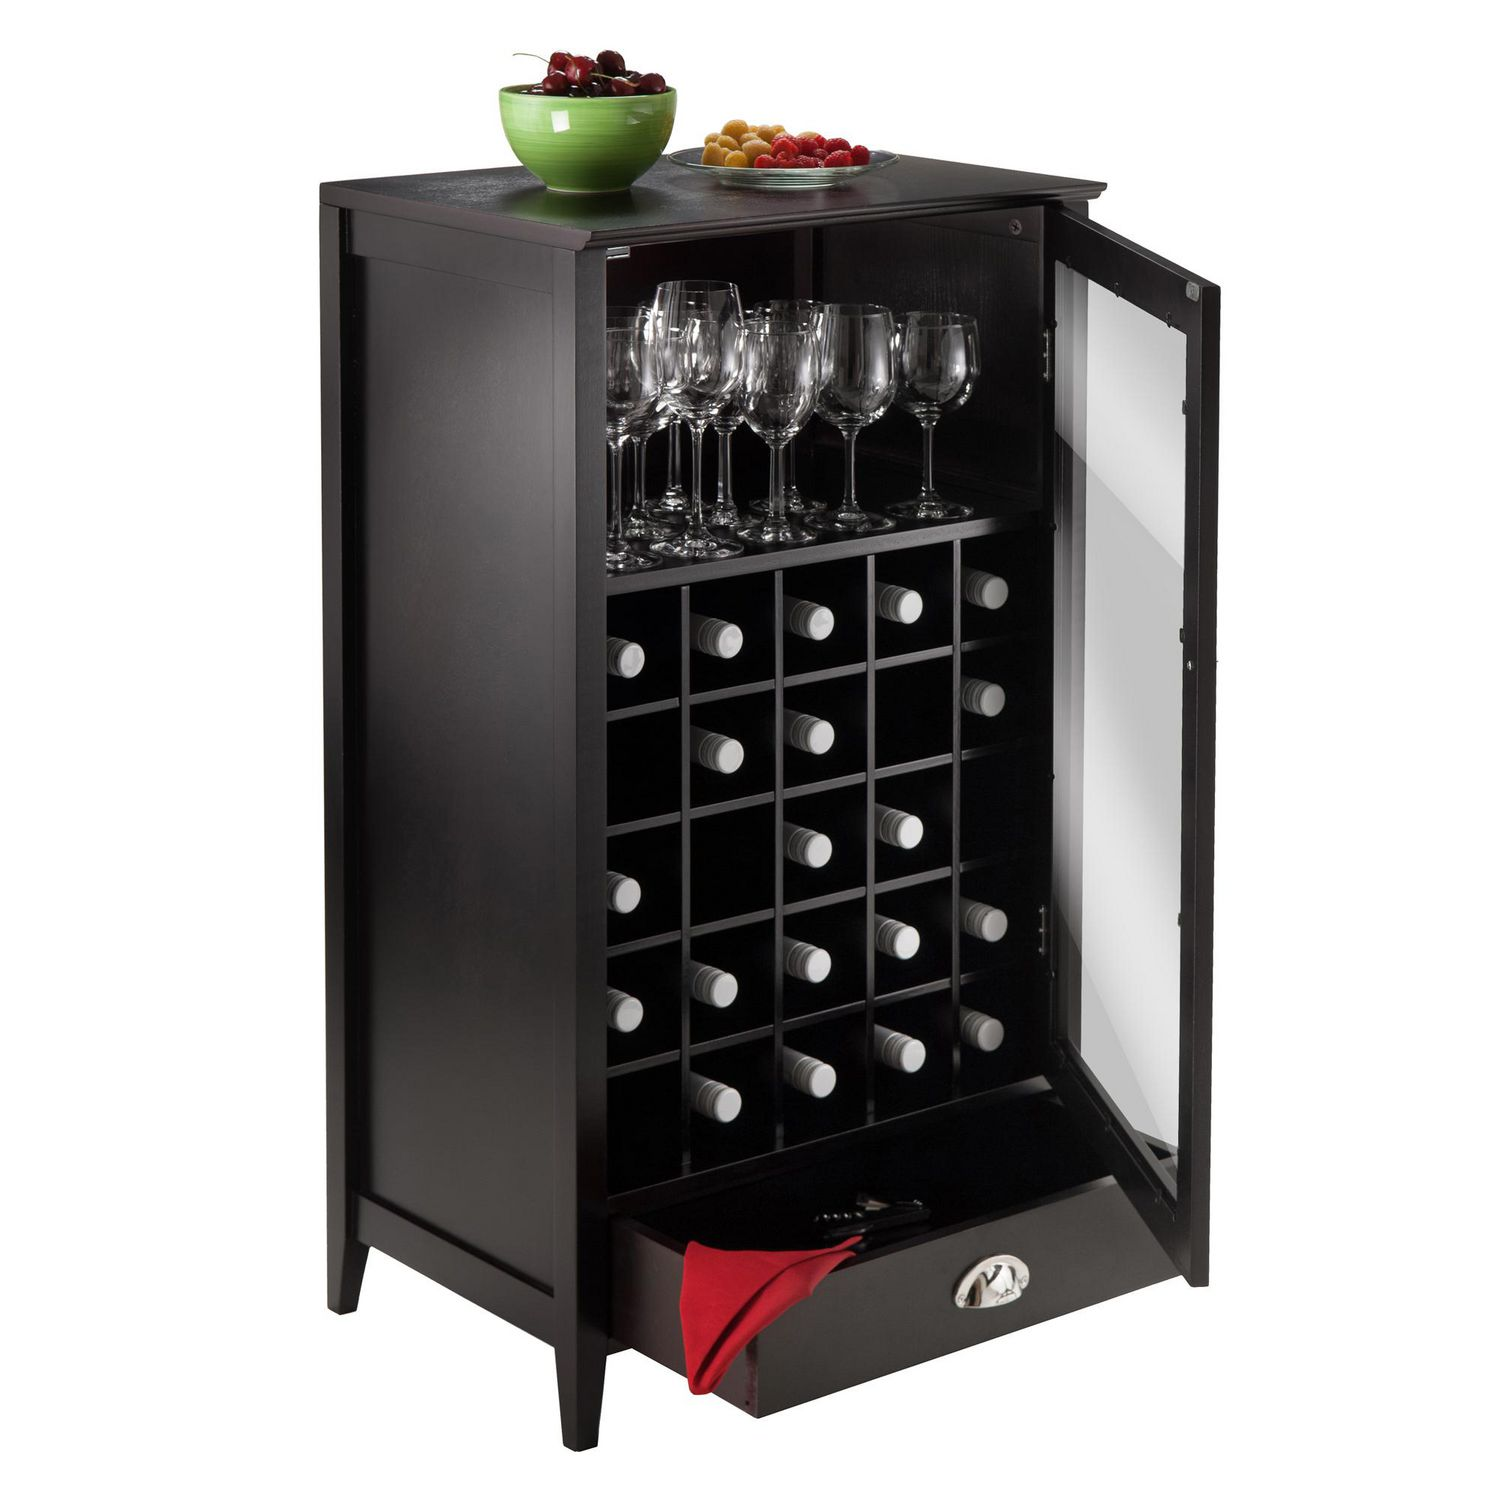 rce wall build furniture holder made hutch rack large cellar stacka your with tall glass wine mini stackable racks bottle cupboard rage shaped own ojcom bar cabinet shelf foldable and